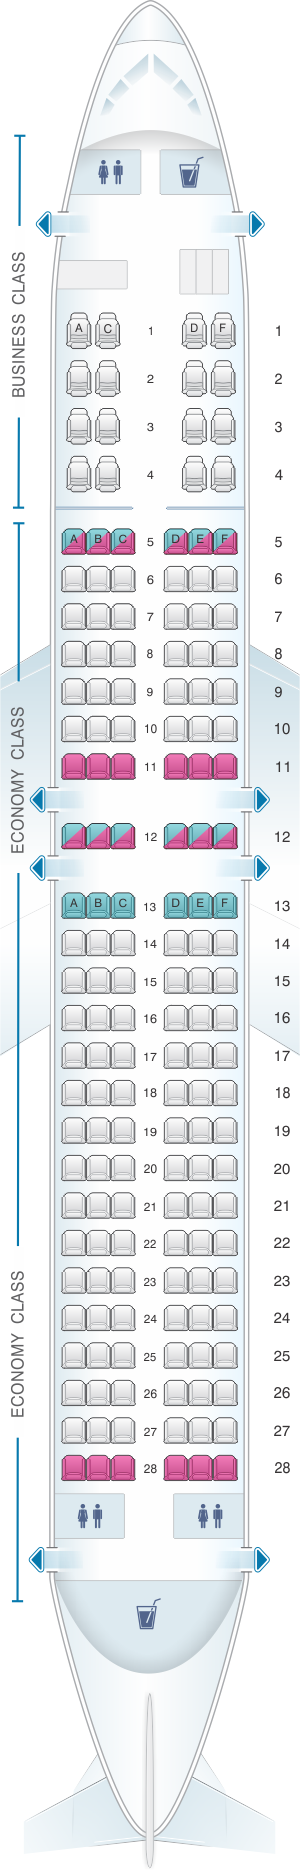 Seat map for Egyptair Boeing B737 800